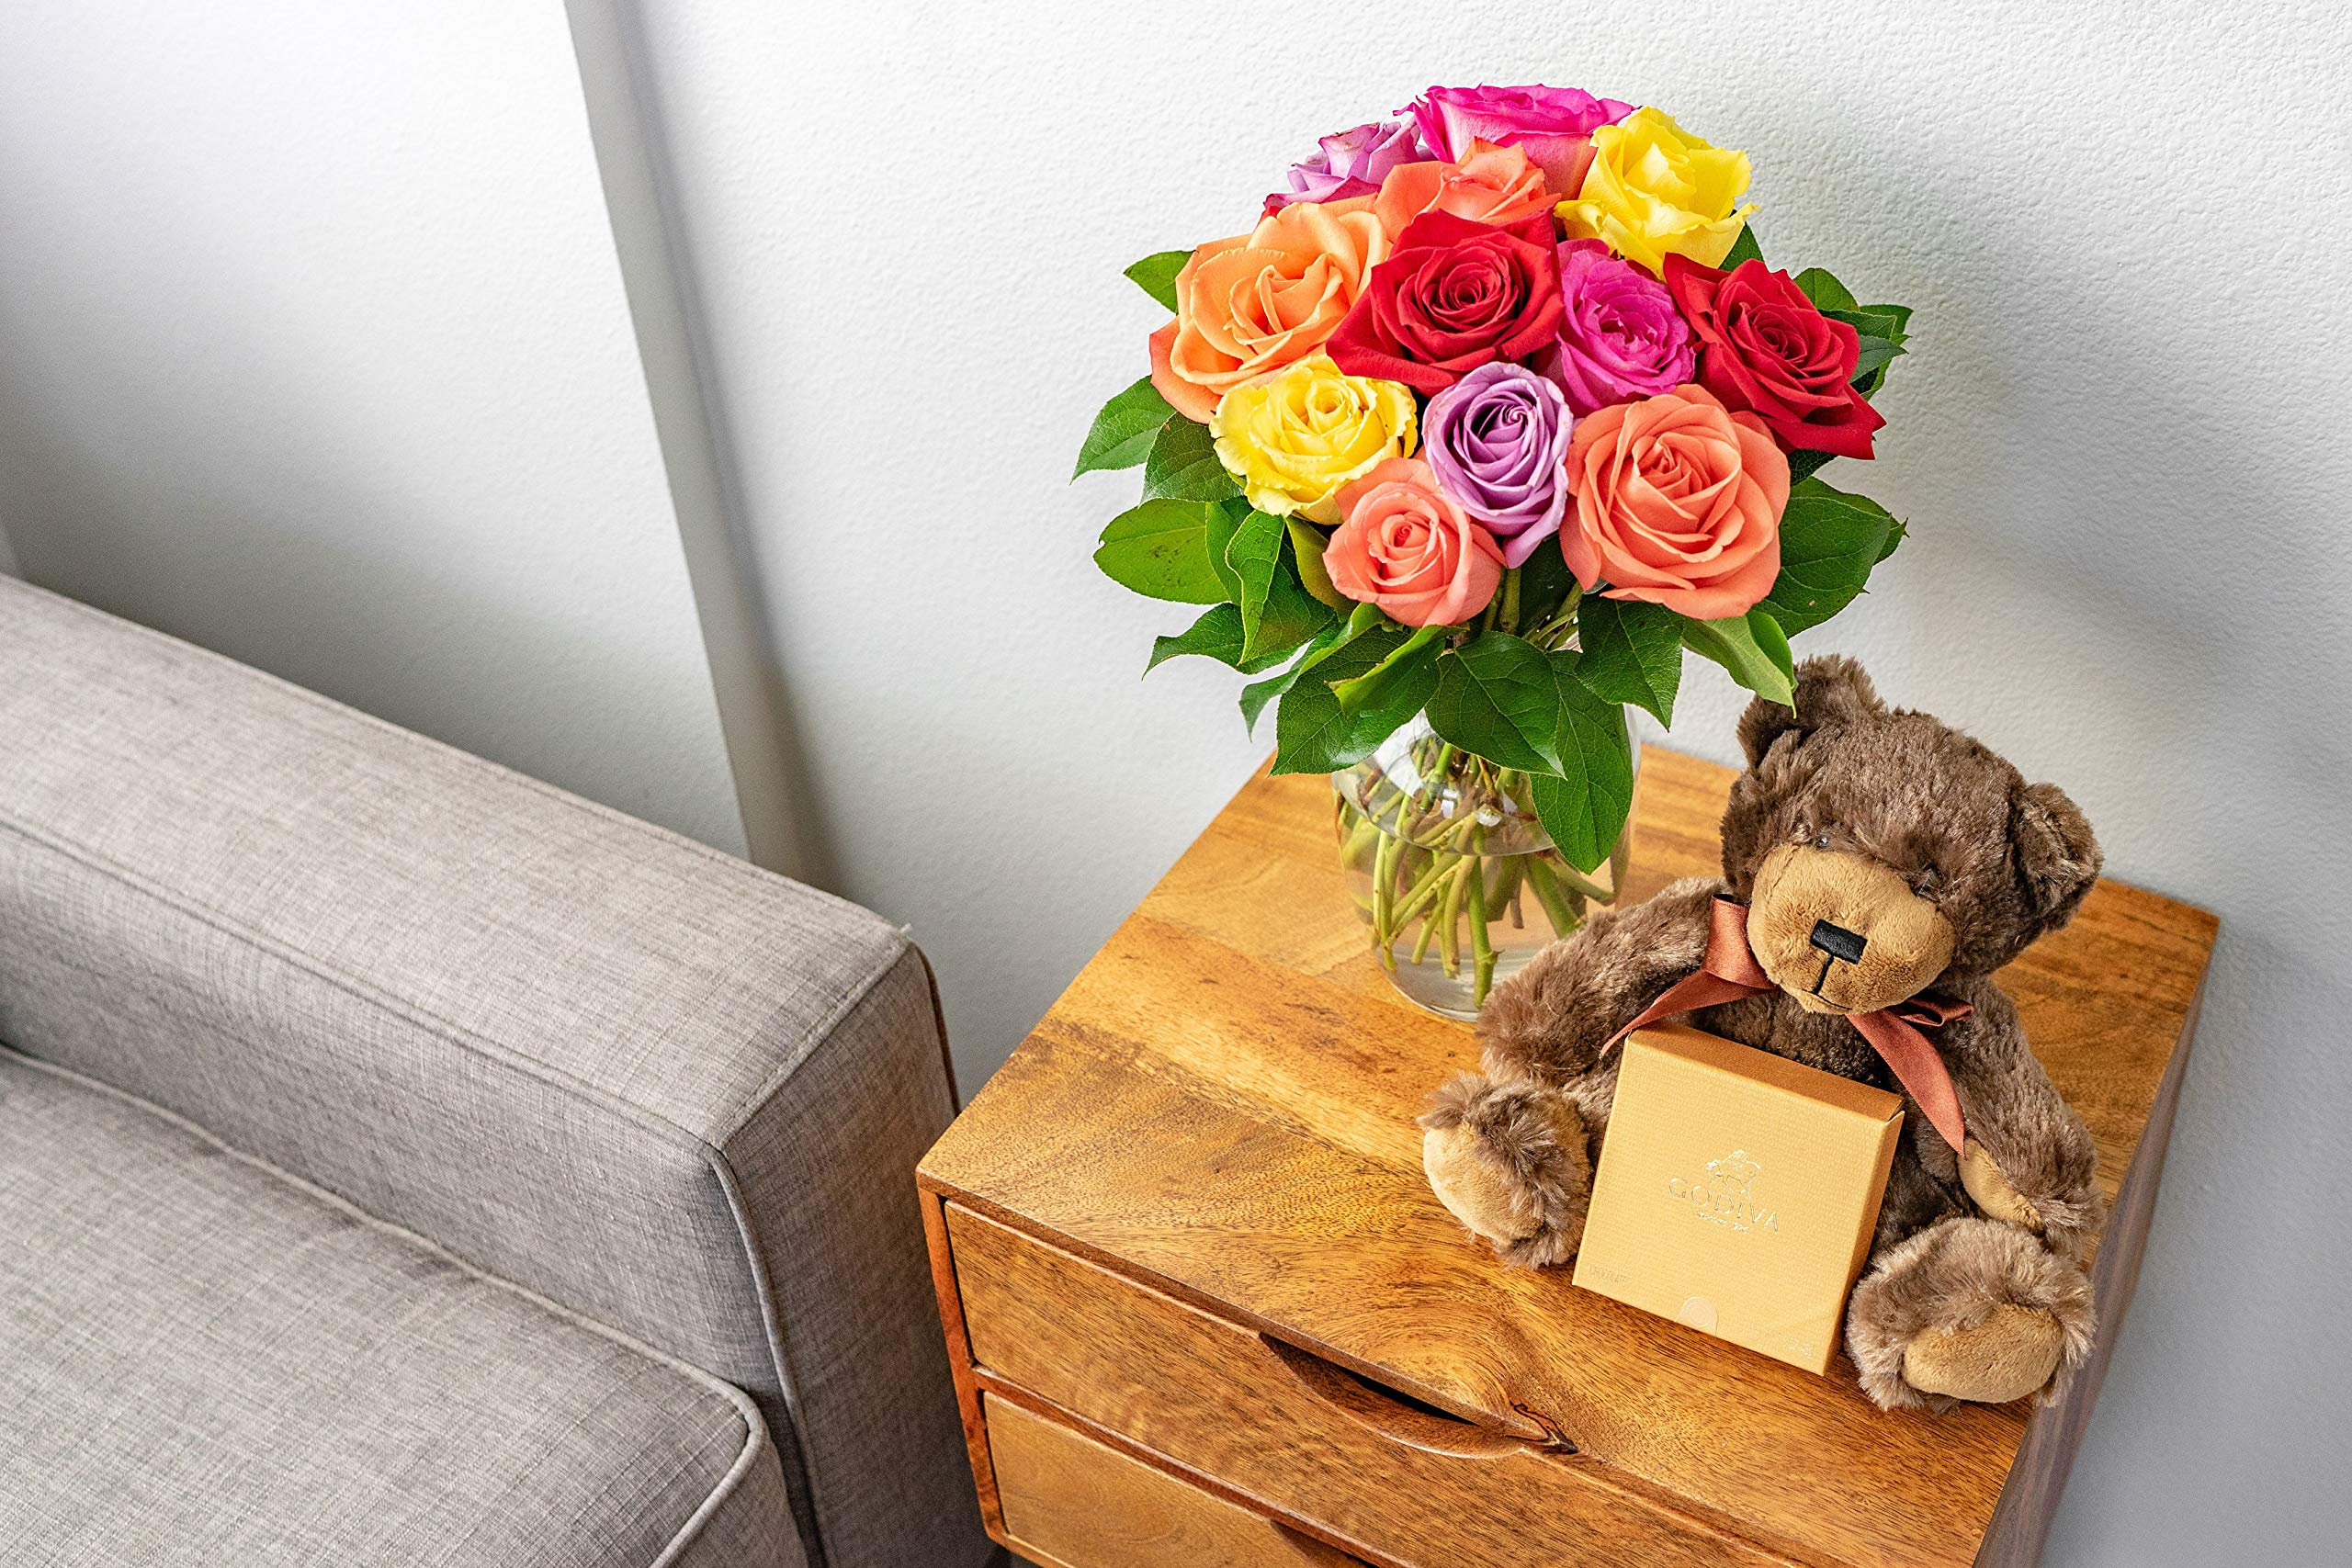 Flowers - One Dozen Rainbow Roses with Godiva & Bear (Free Vase Included) by From You Flowers